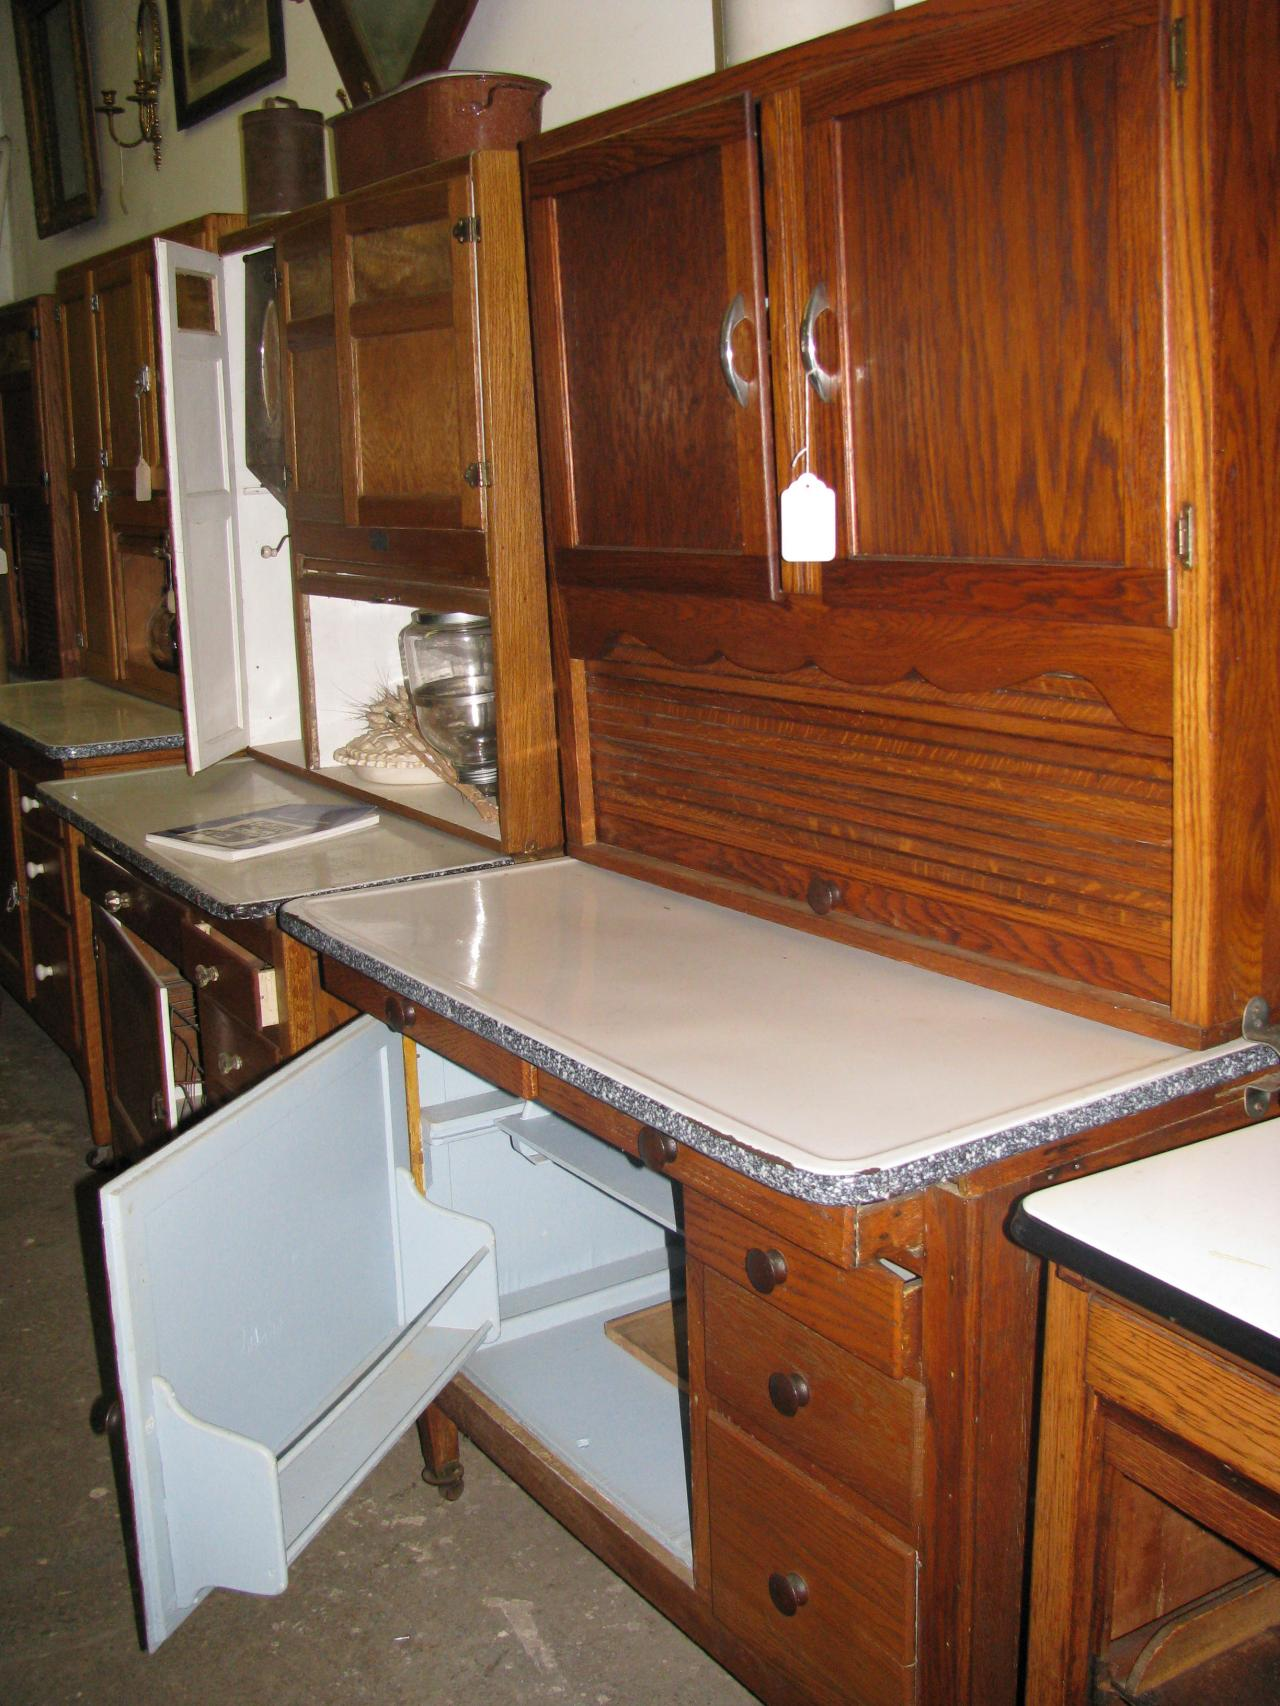 ... Hoosier Bakers Kitchen Cabinet Circa 1917-1920 ... - Z's Antiques & Restorations - Hoosier/Baker's Cabinets Including Yet